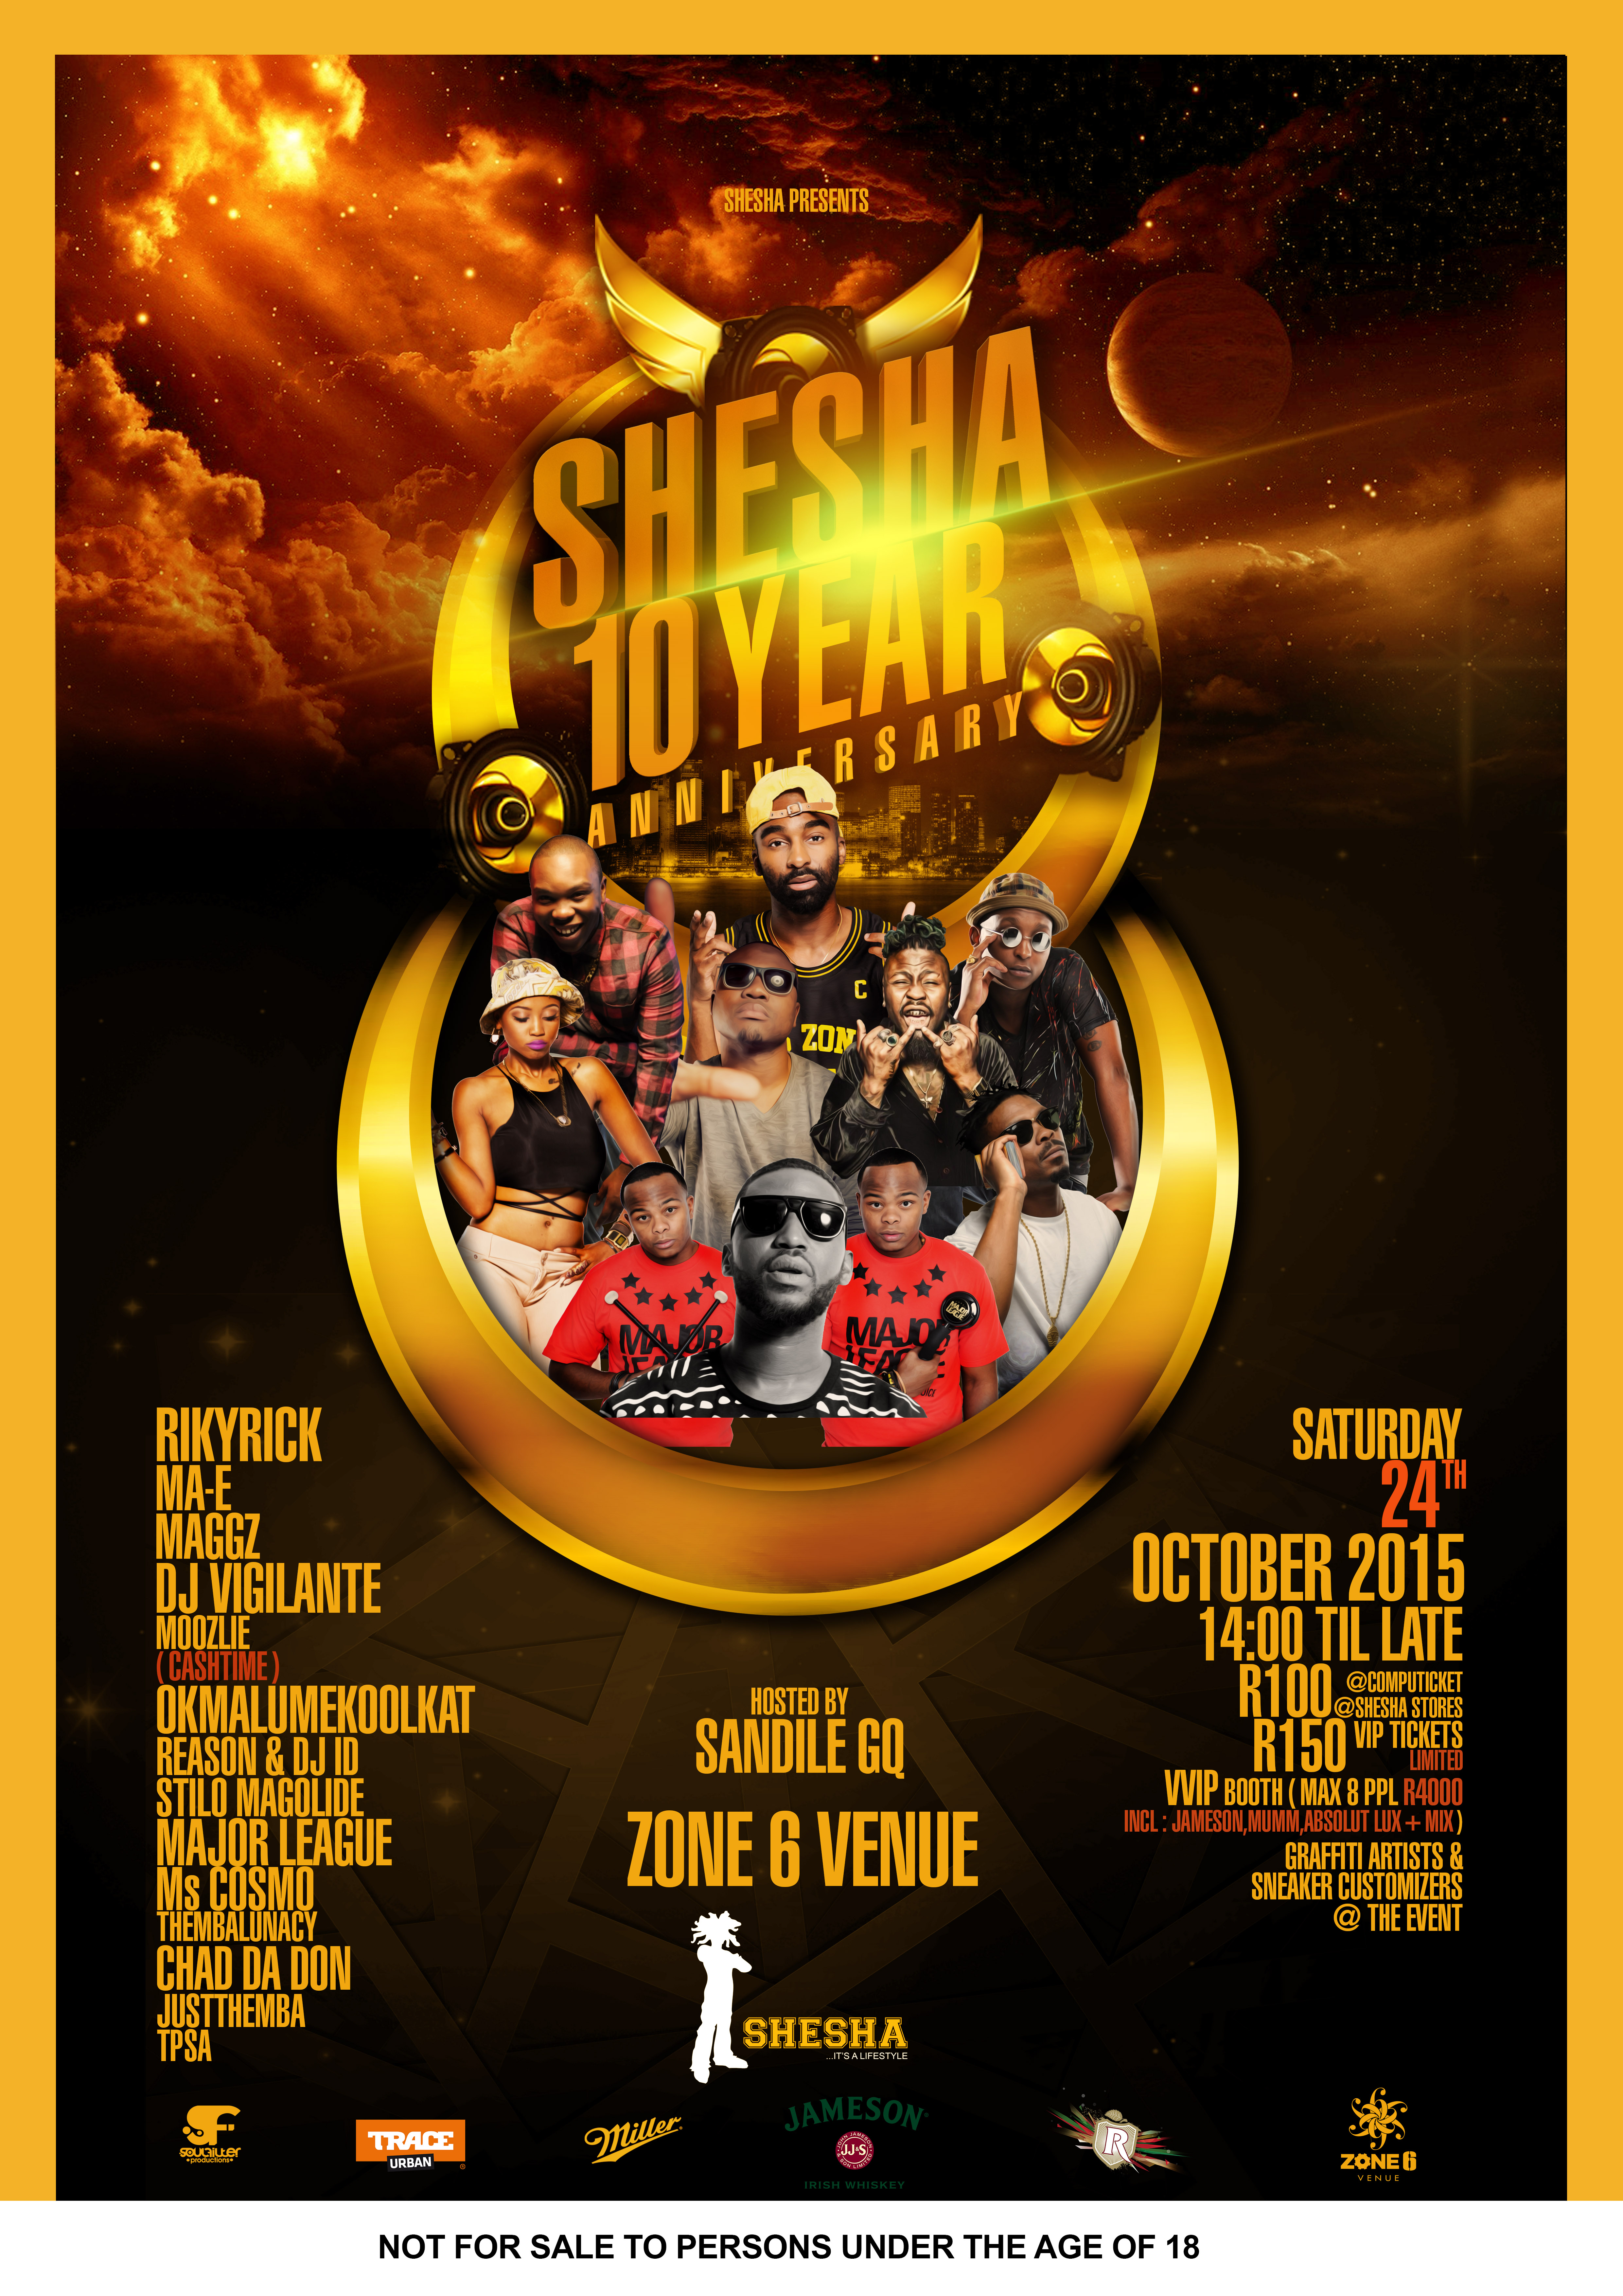 Shesha Store 10 Year Celebration Is Going Down This Weekend SHESHA 10 YEAR ANNIVERSARY BOUNDED